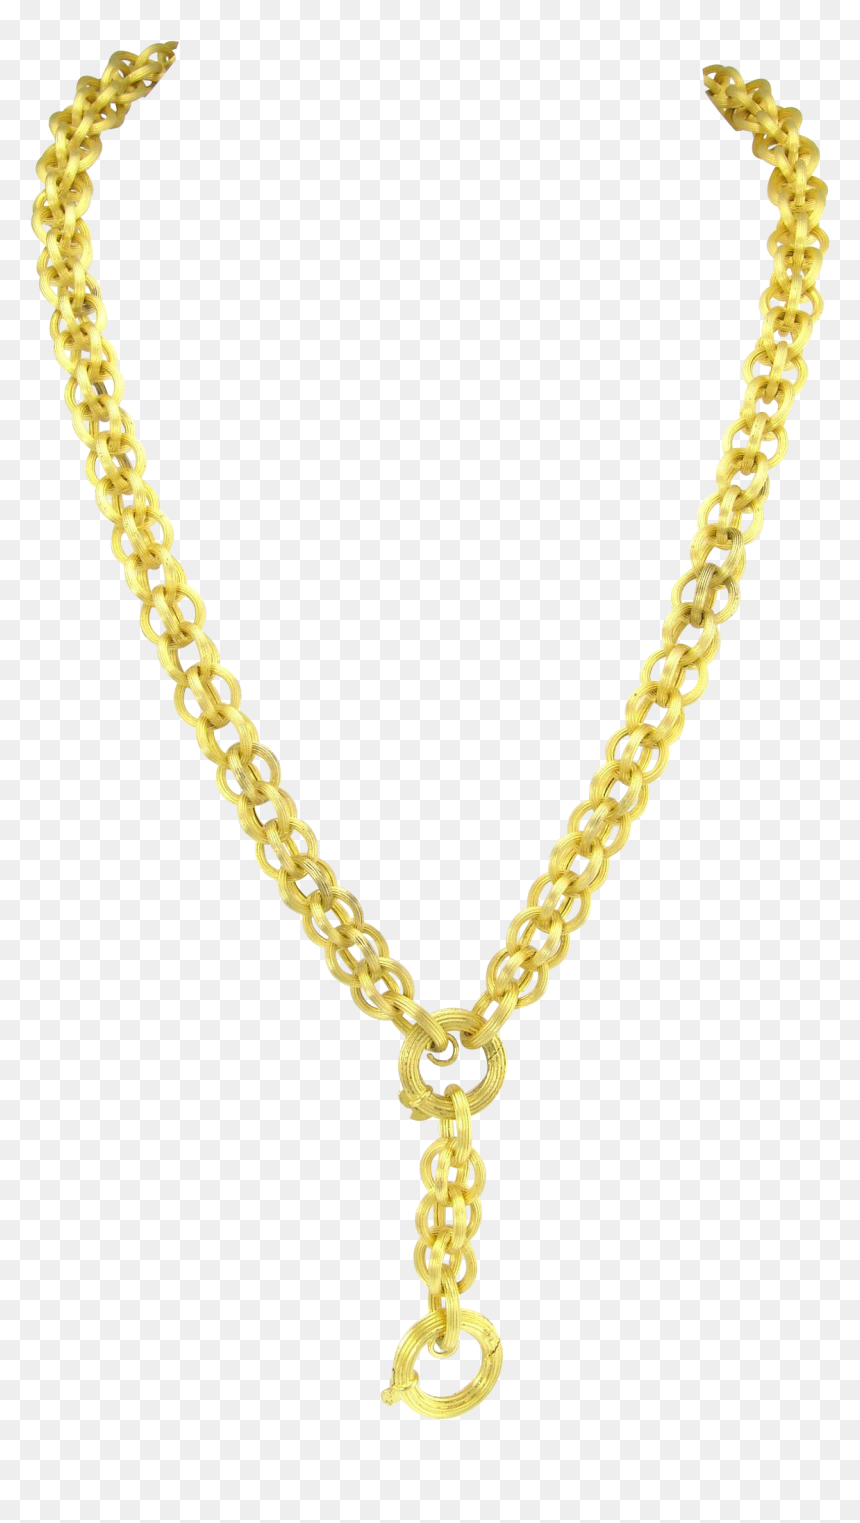 Jewelry Clipart Gold Chain Picsart Gold Chain Png Transparent Png Vhv If you like, you can download pictures in icon format or directly in. picsart gold chain png transparent png